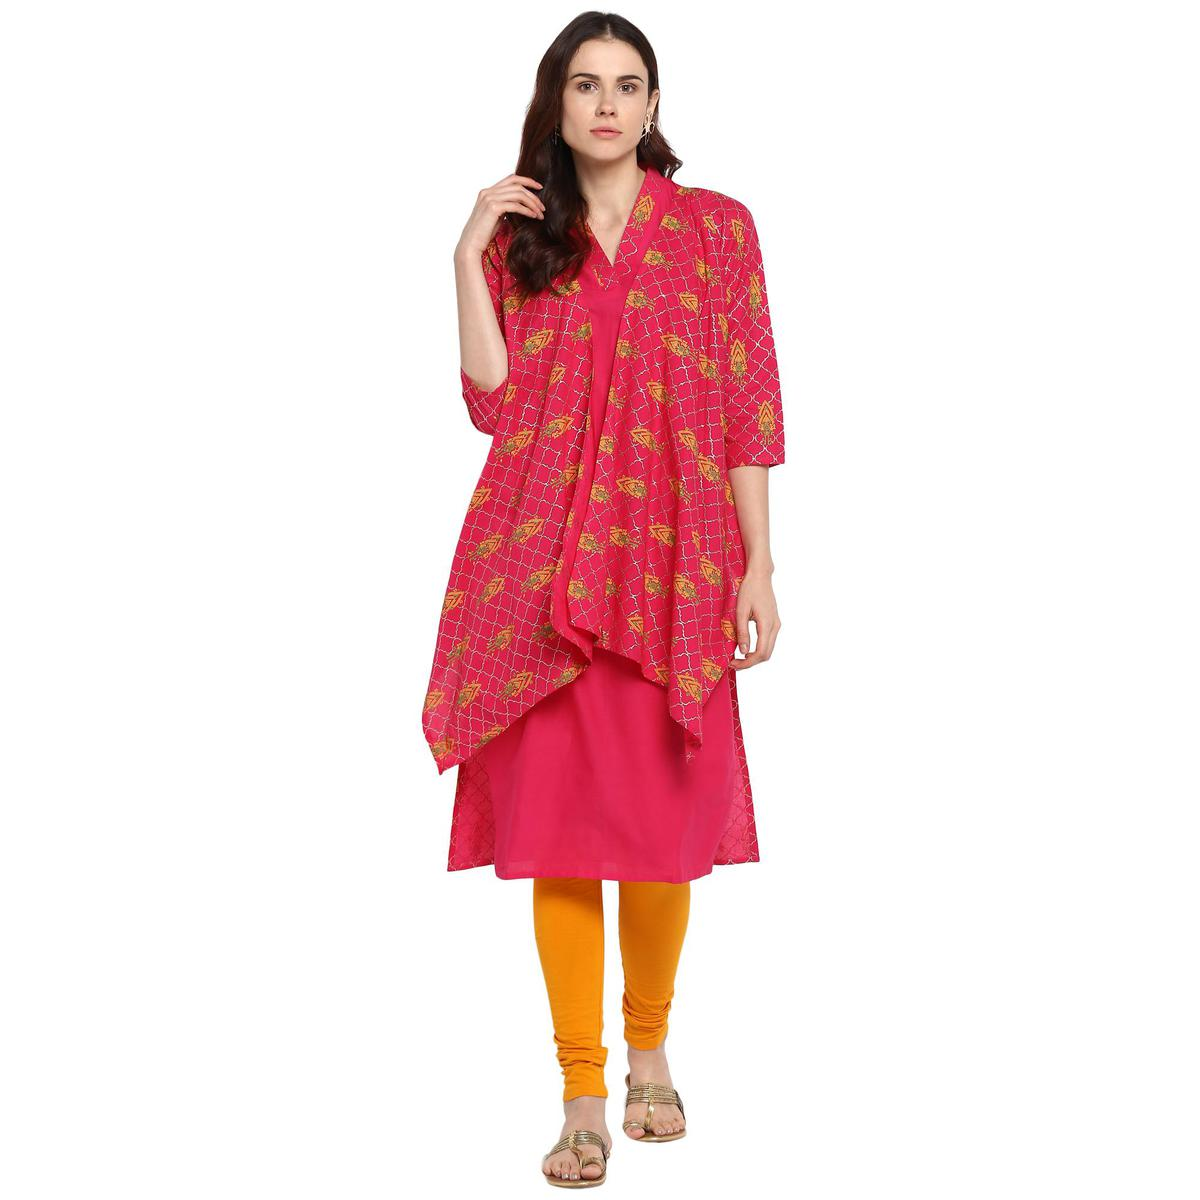 AHALYAA - Pink Colored Cotton Kurta with Attached Faux Shrug